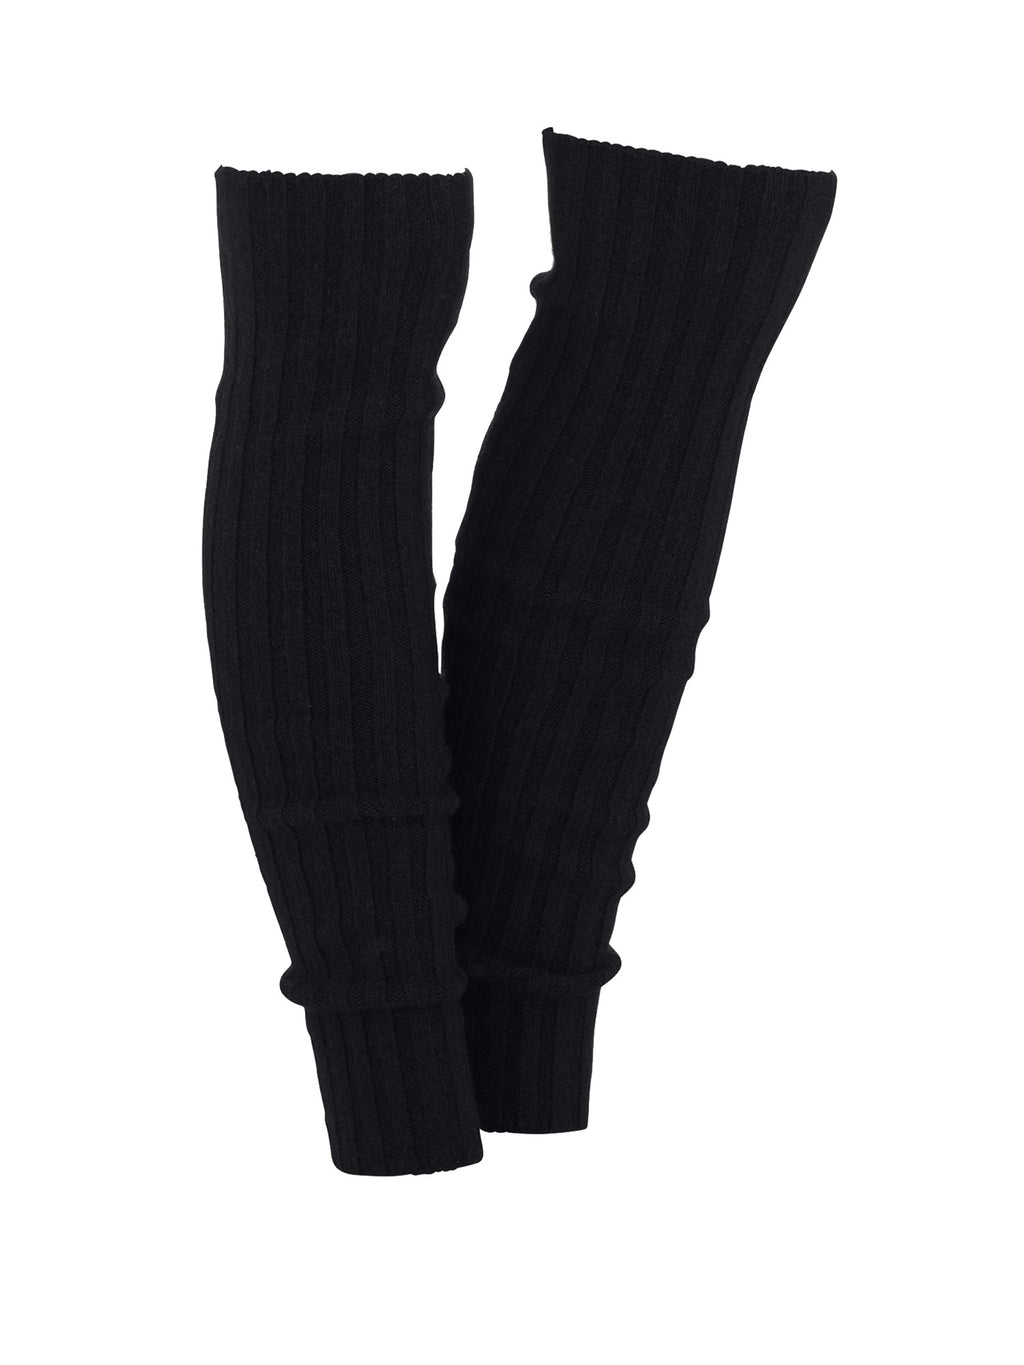 leg warmers in 100% cashmere by Kashmina